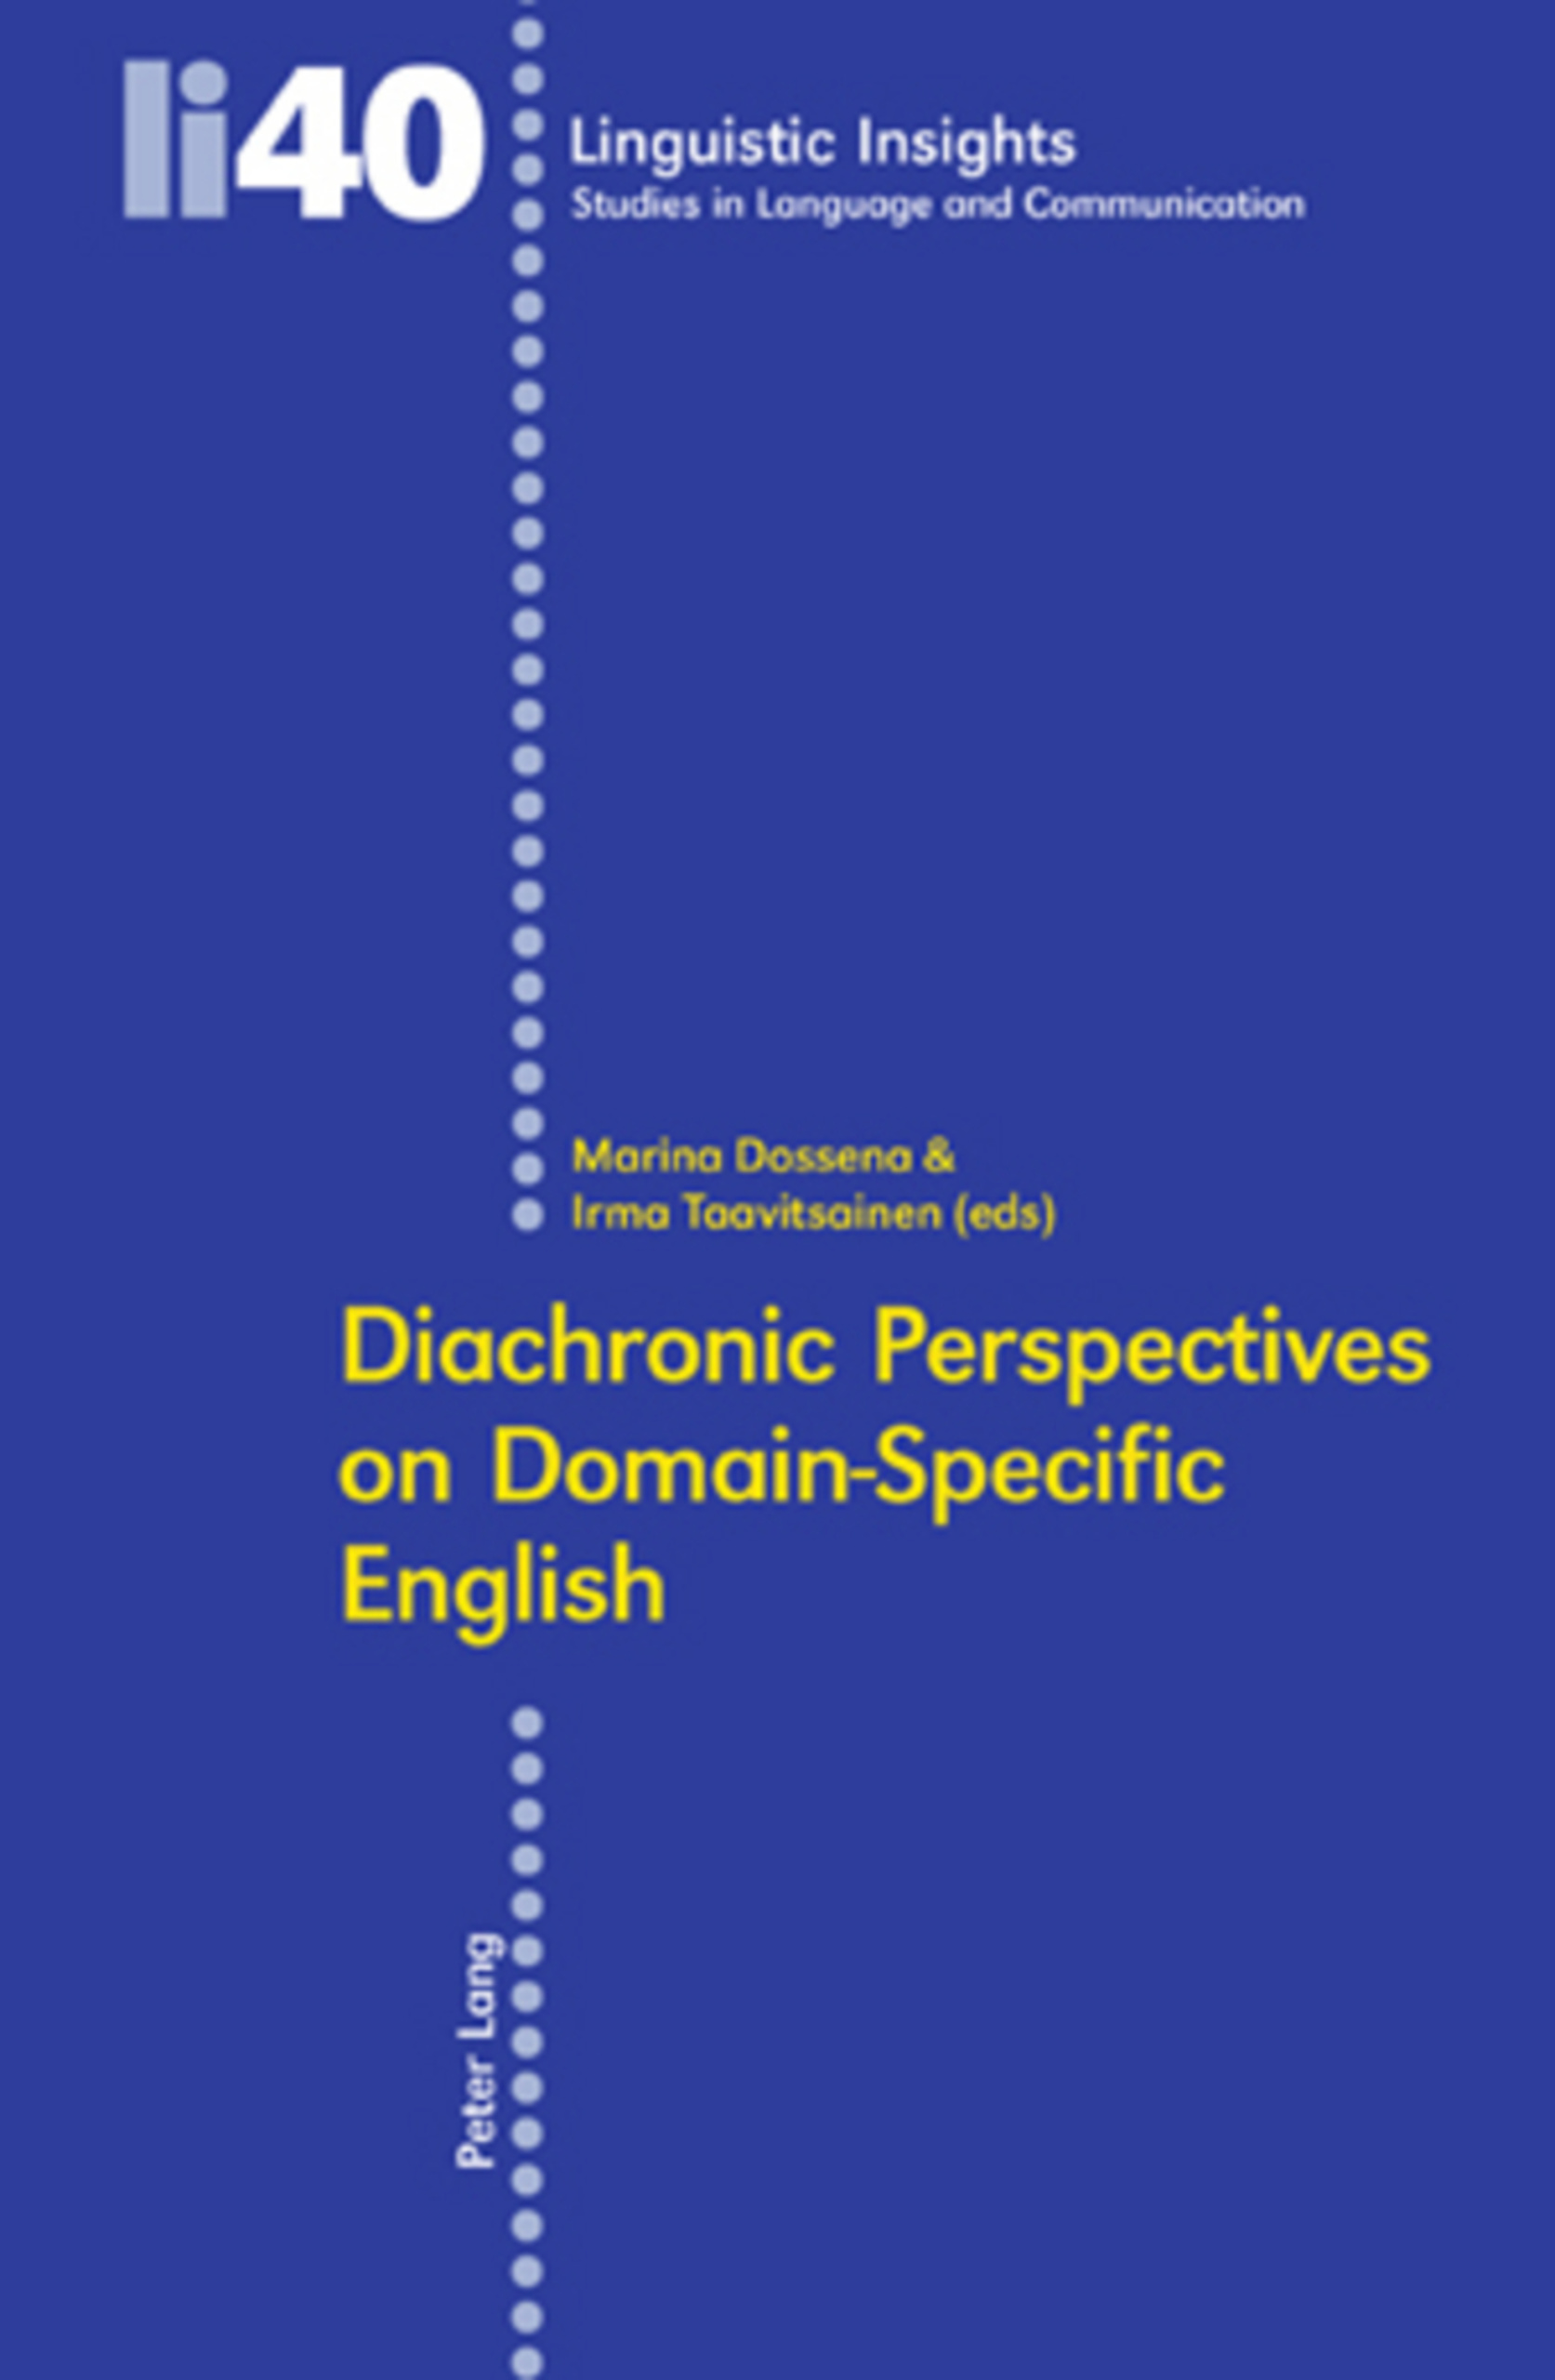 Title: Diachronic Perspectives on Domain-Specific English